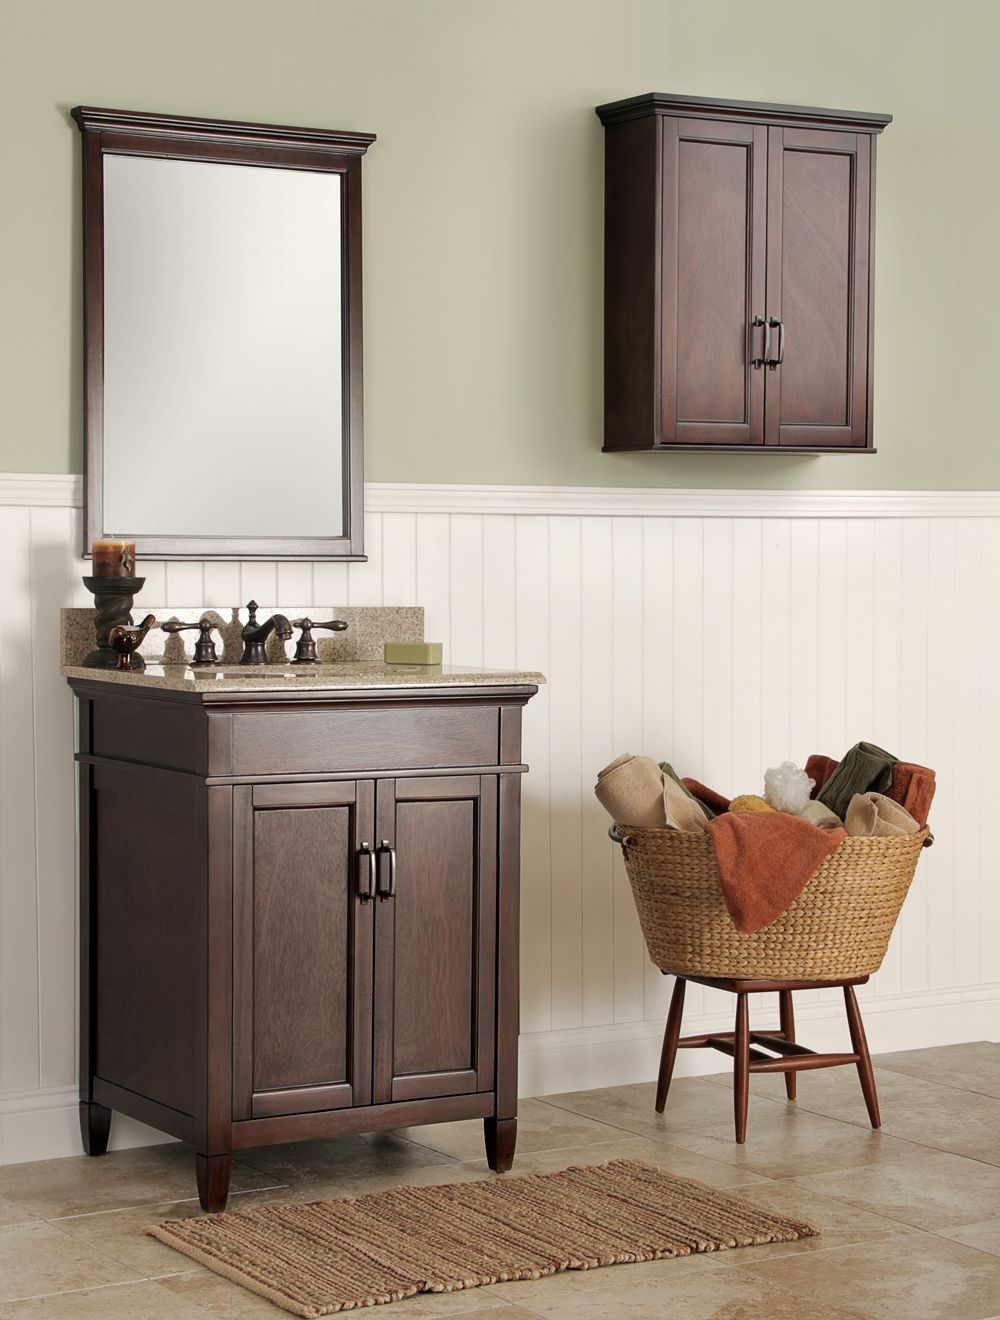 319 00 Ashburn 24 Quot Vanity Foremost At The Home Depot 24